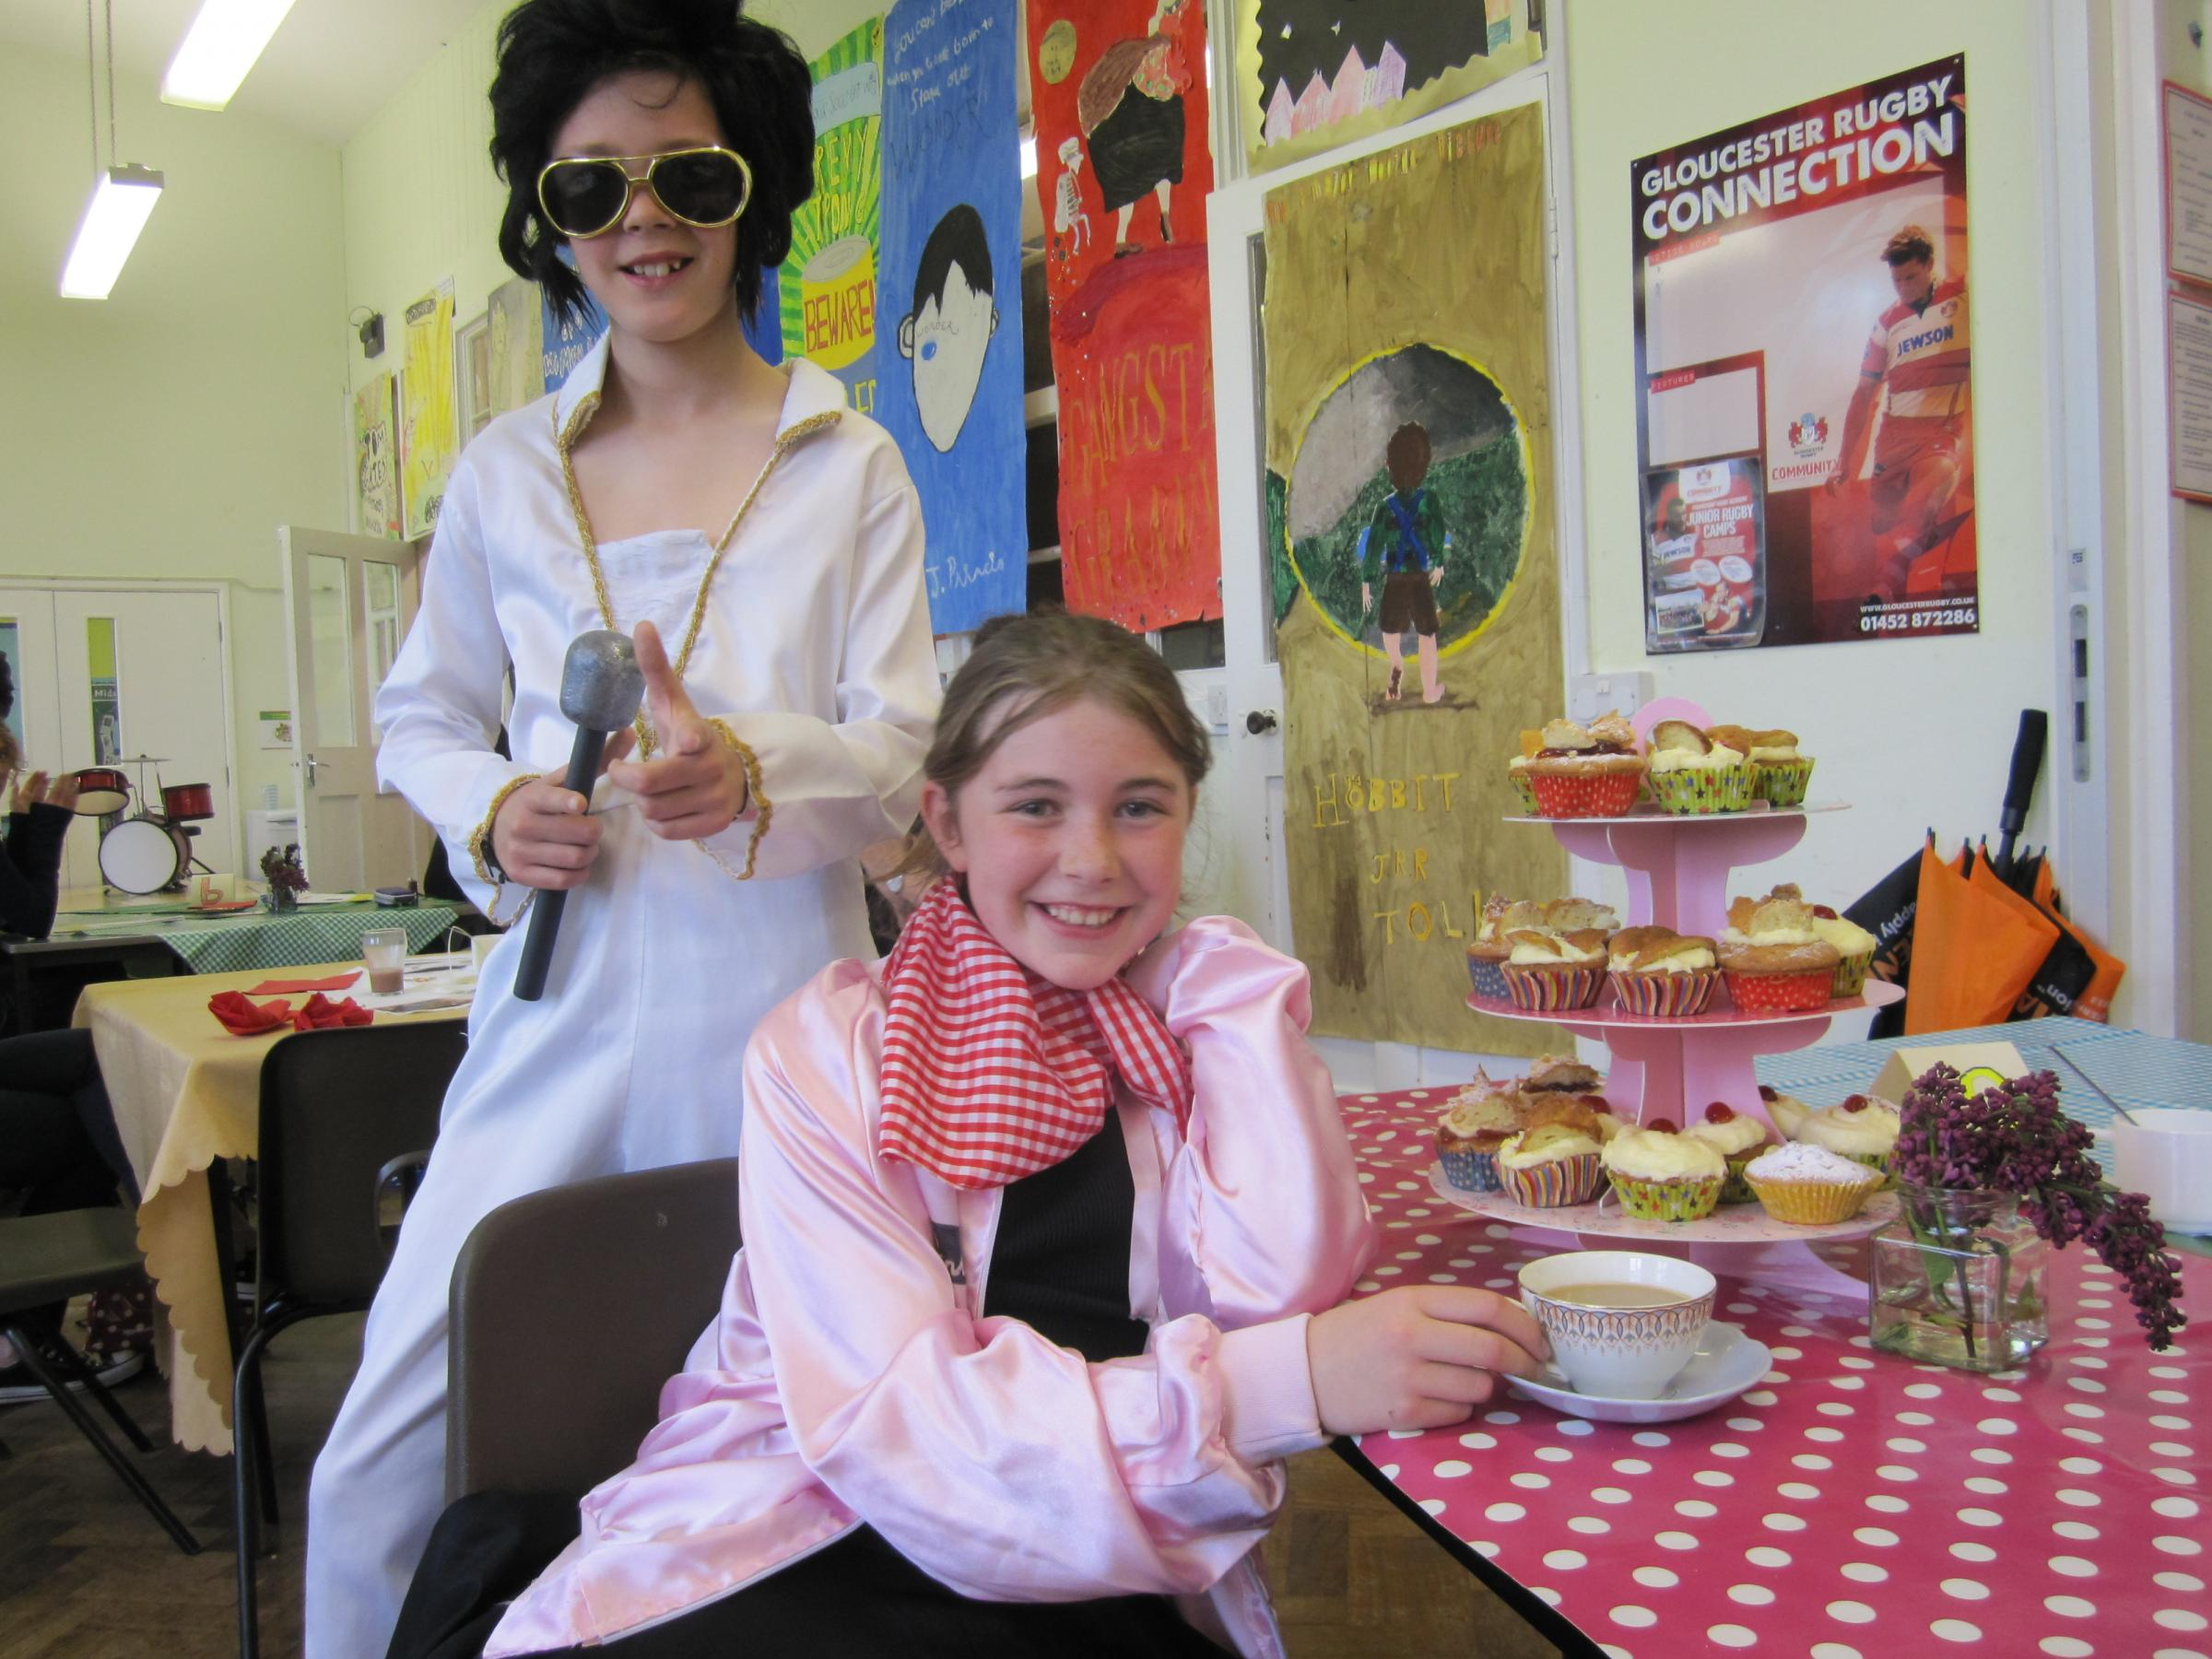 Roller-skating waitress Rebecca Jones with George Eden dressed as Elvis Presley at Uley Primary School's fundraising retro cafe (5958434)